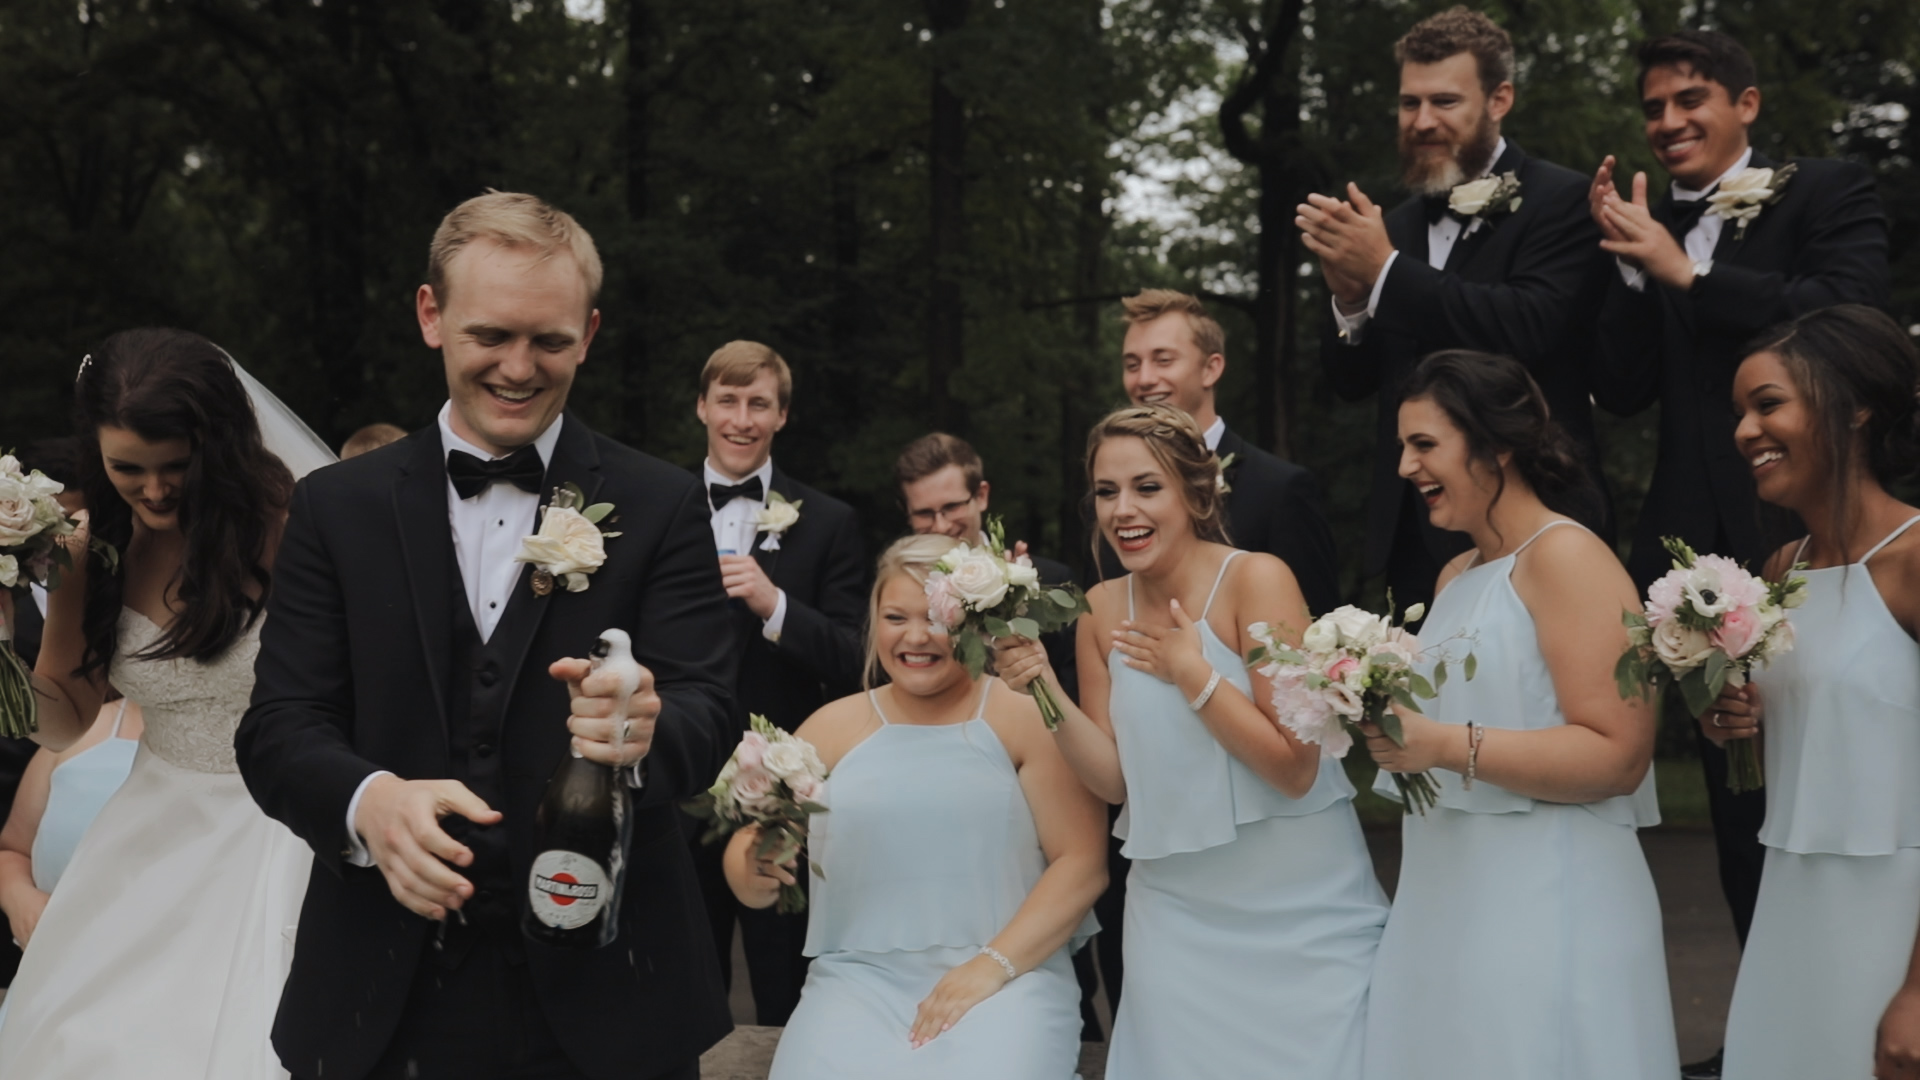 Groom popping champagne at wedding wedding party cheering in background wearing Hayley Paige Occasions soft blue bridesmaids dresses